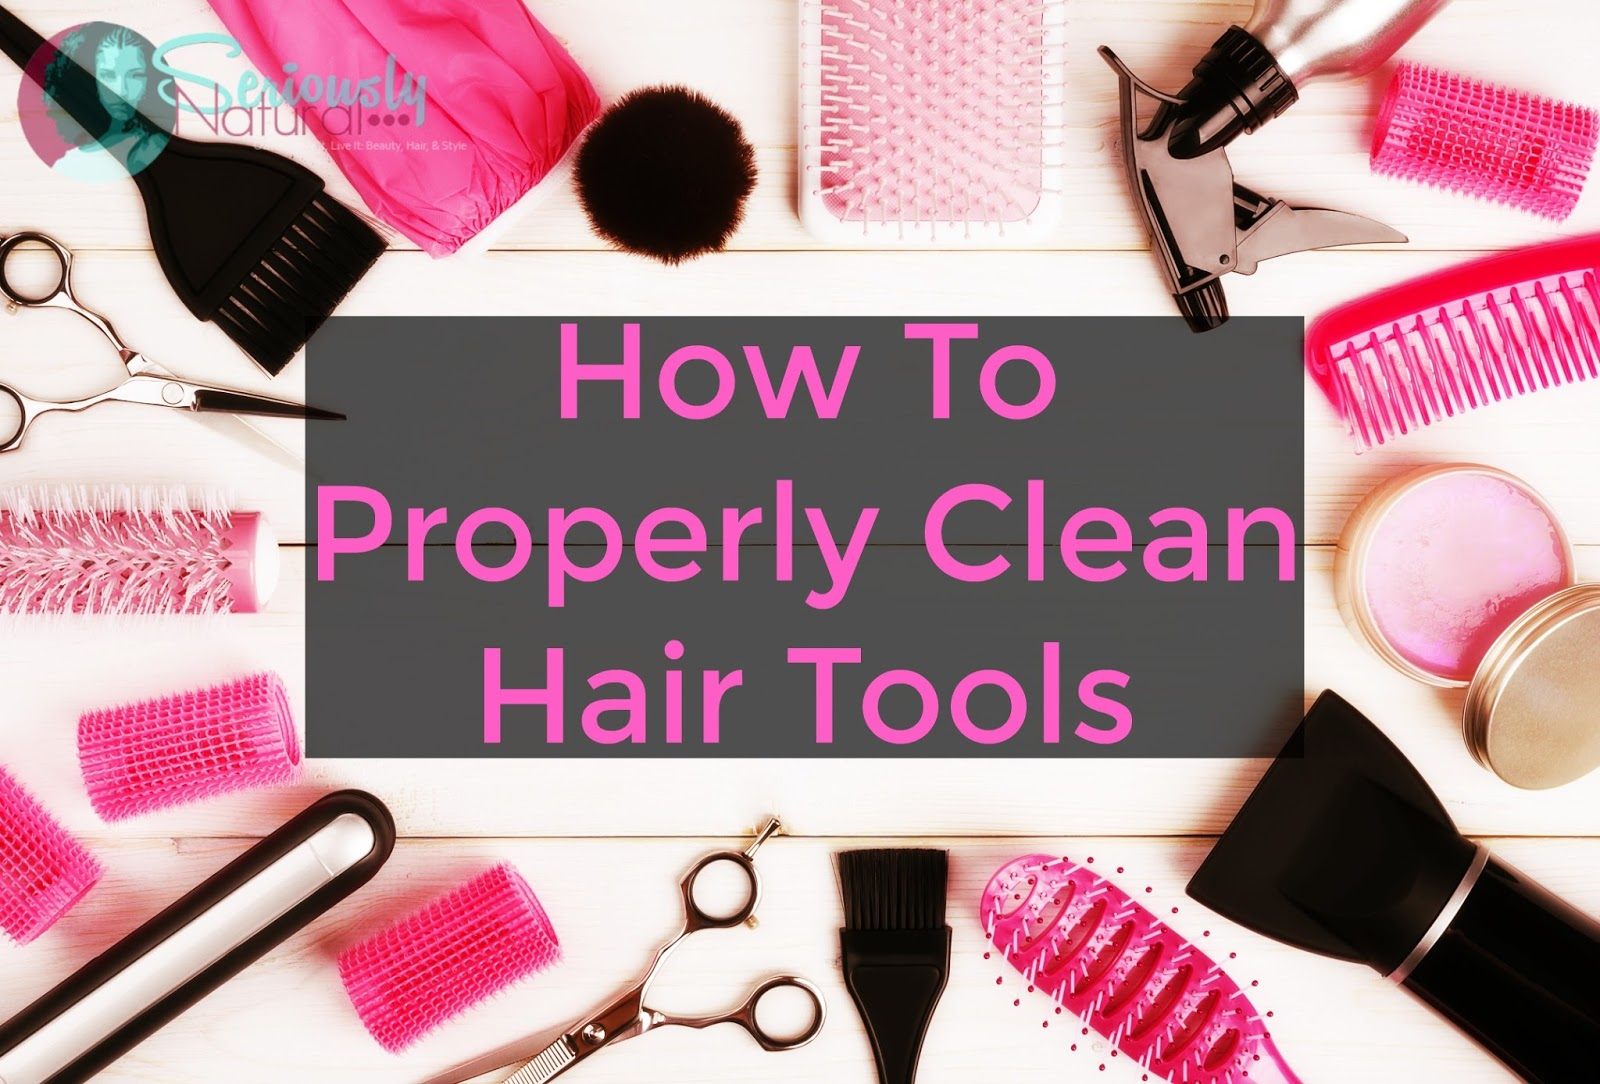 How To Properly Clean Hair Tools